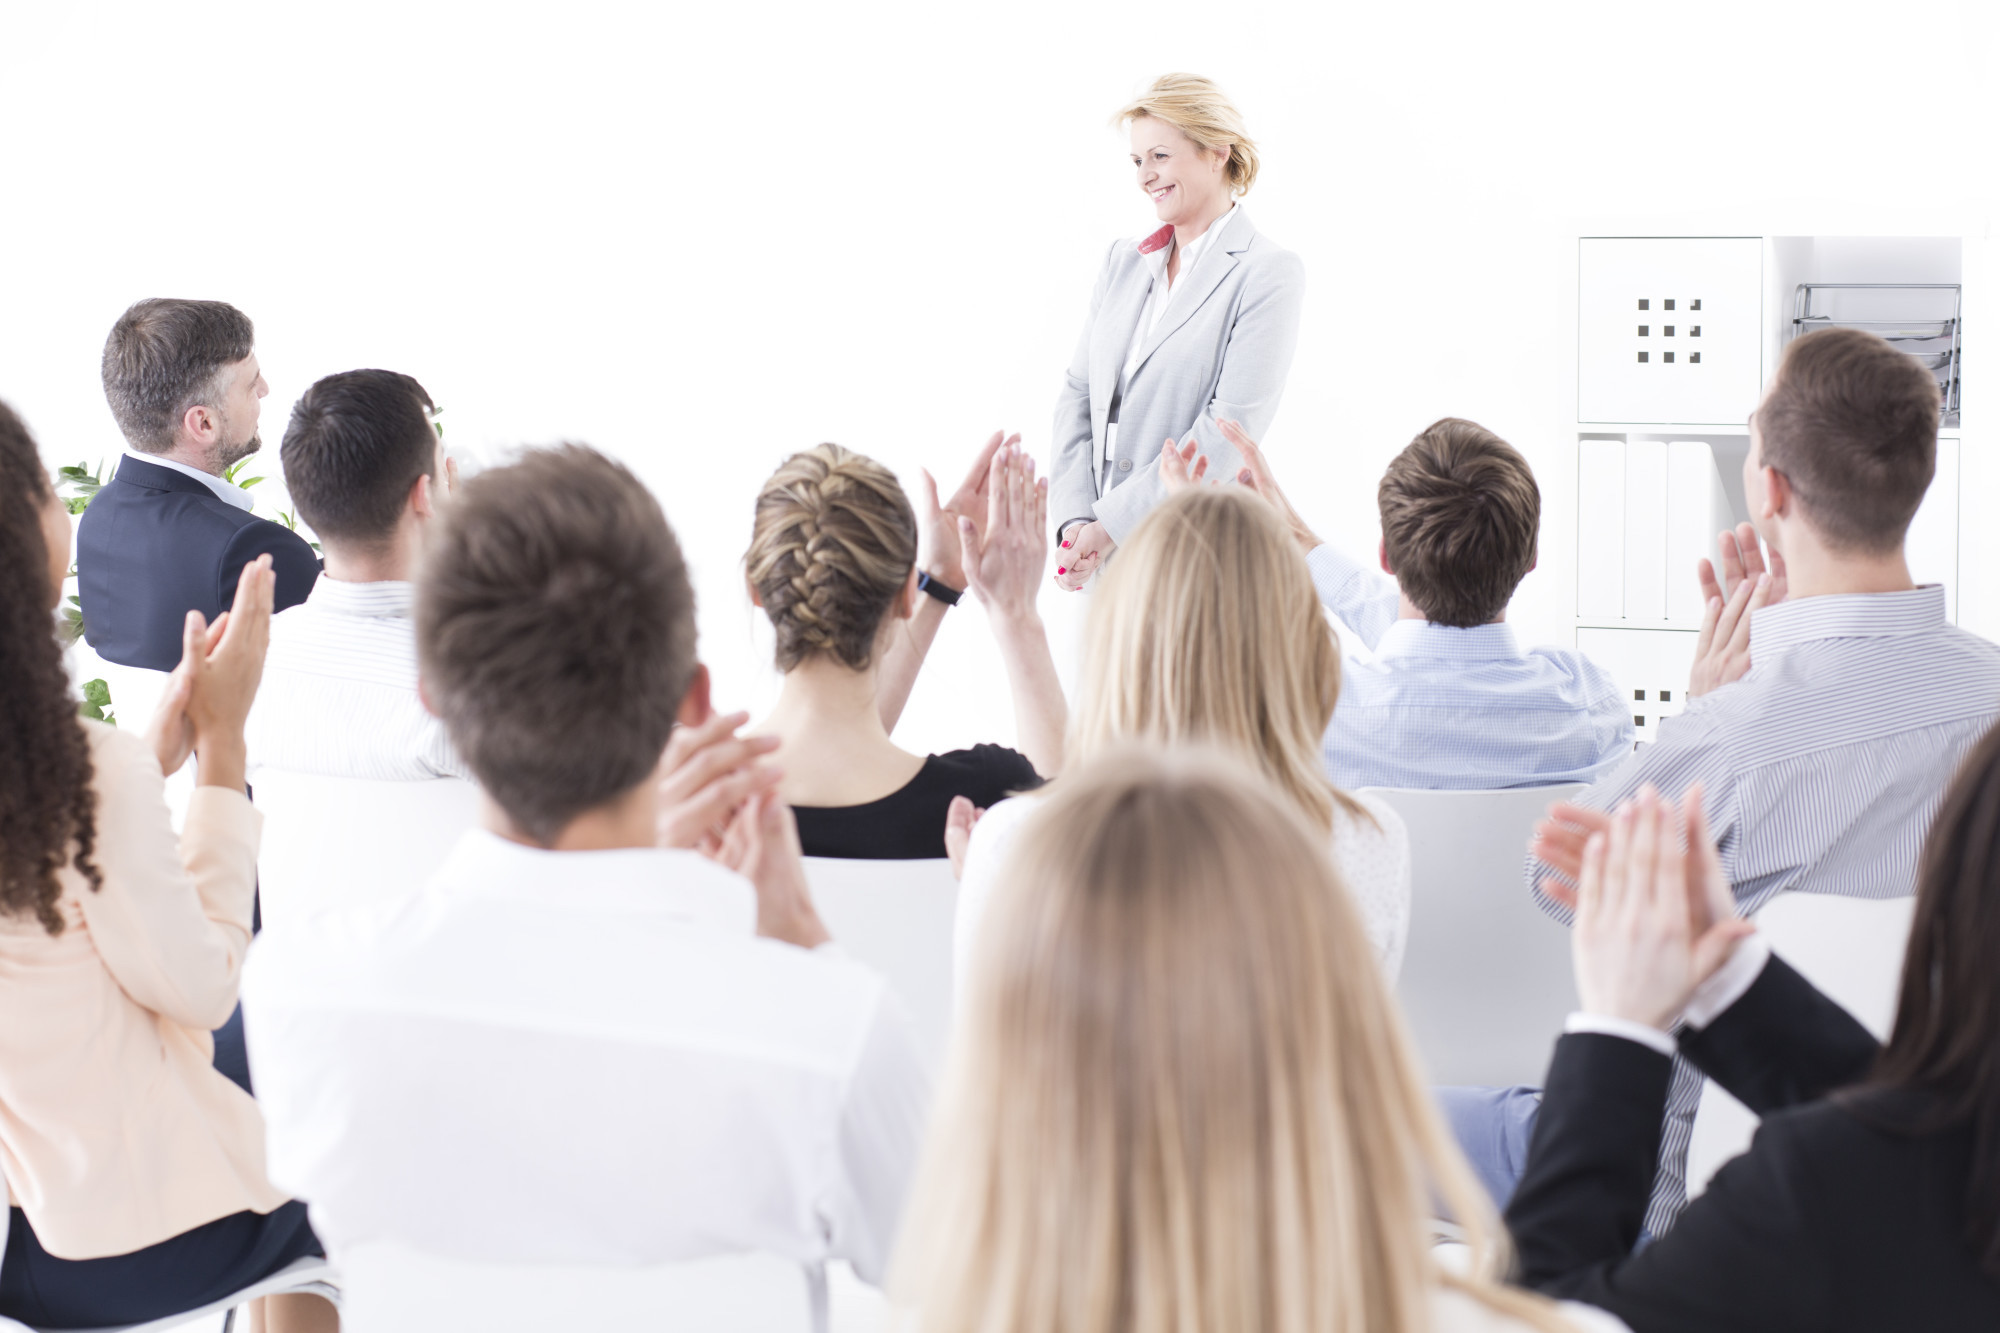 Group of office workers clapping hands at their middle-aged colleague during a staff meeting